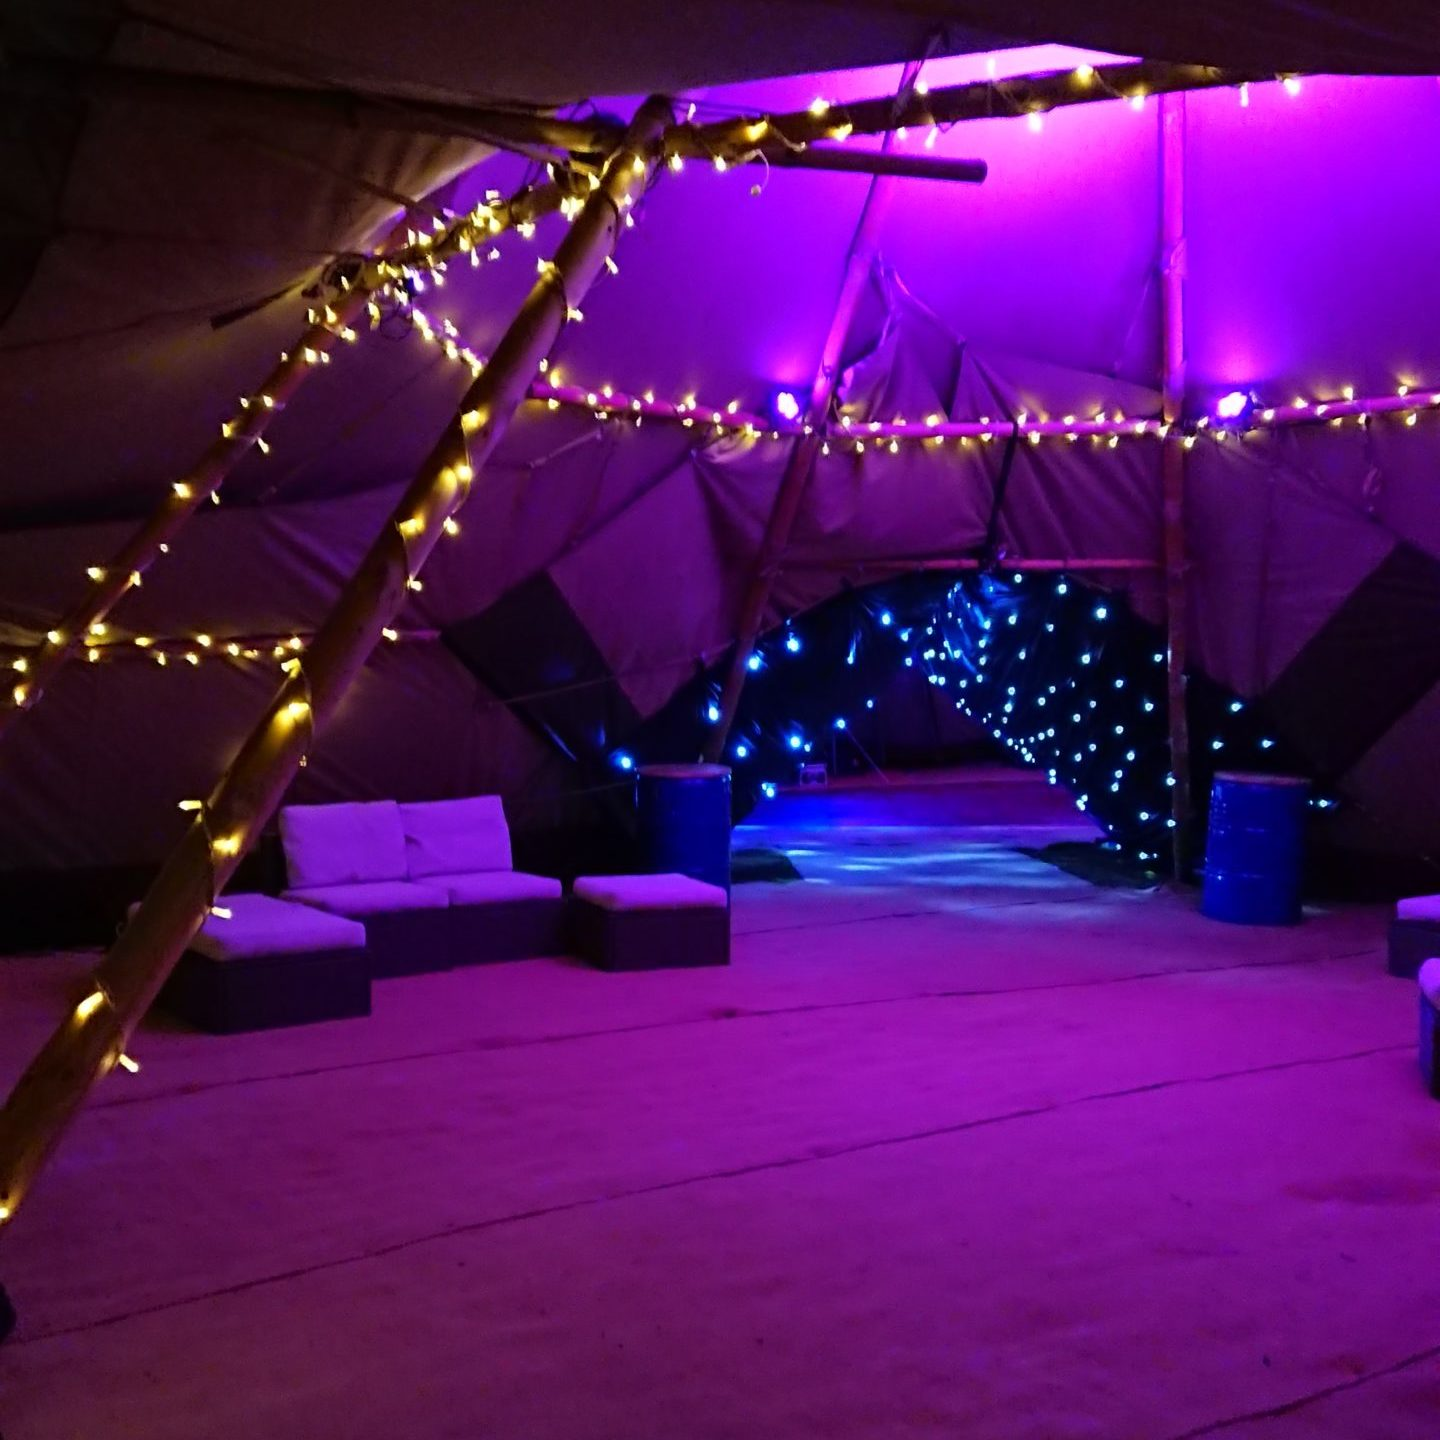 Unique tipi set up with bar and sofa area and starry tunnel to the next tipi